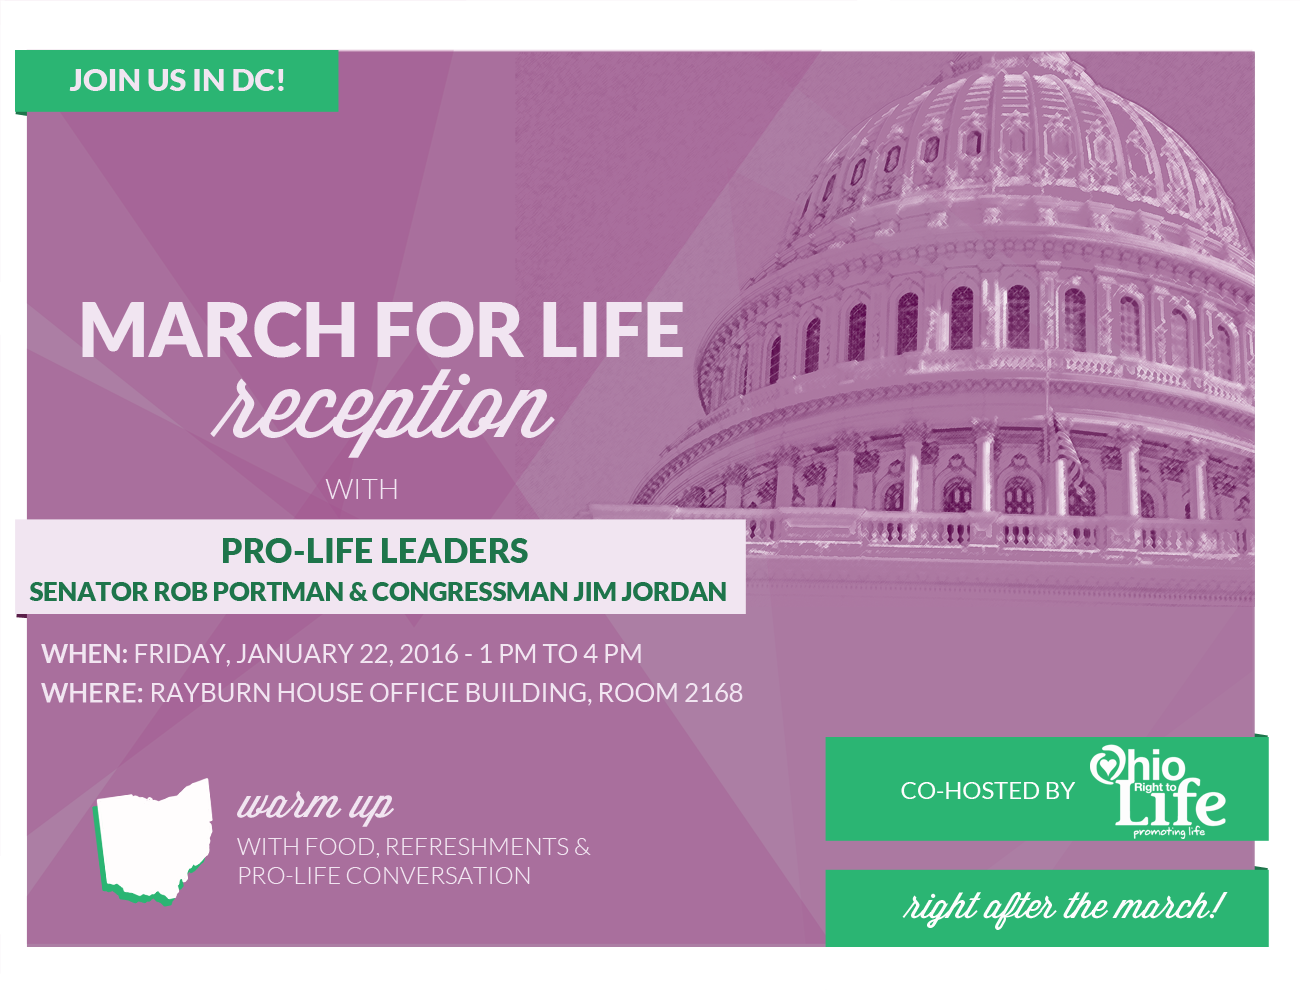 March_for_Life_2016_Reception_invite.png